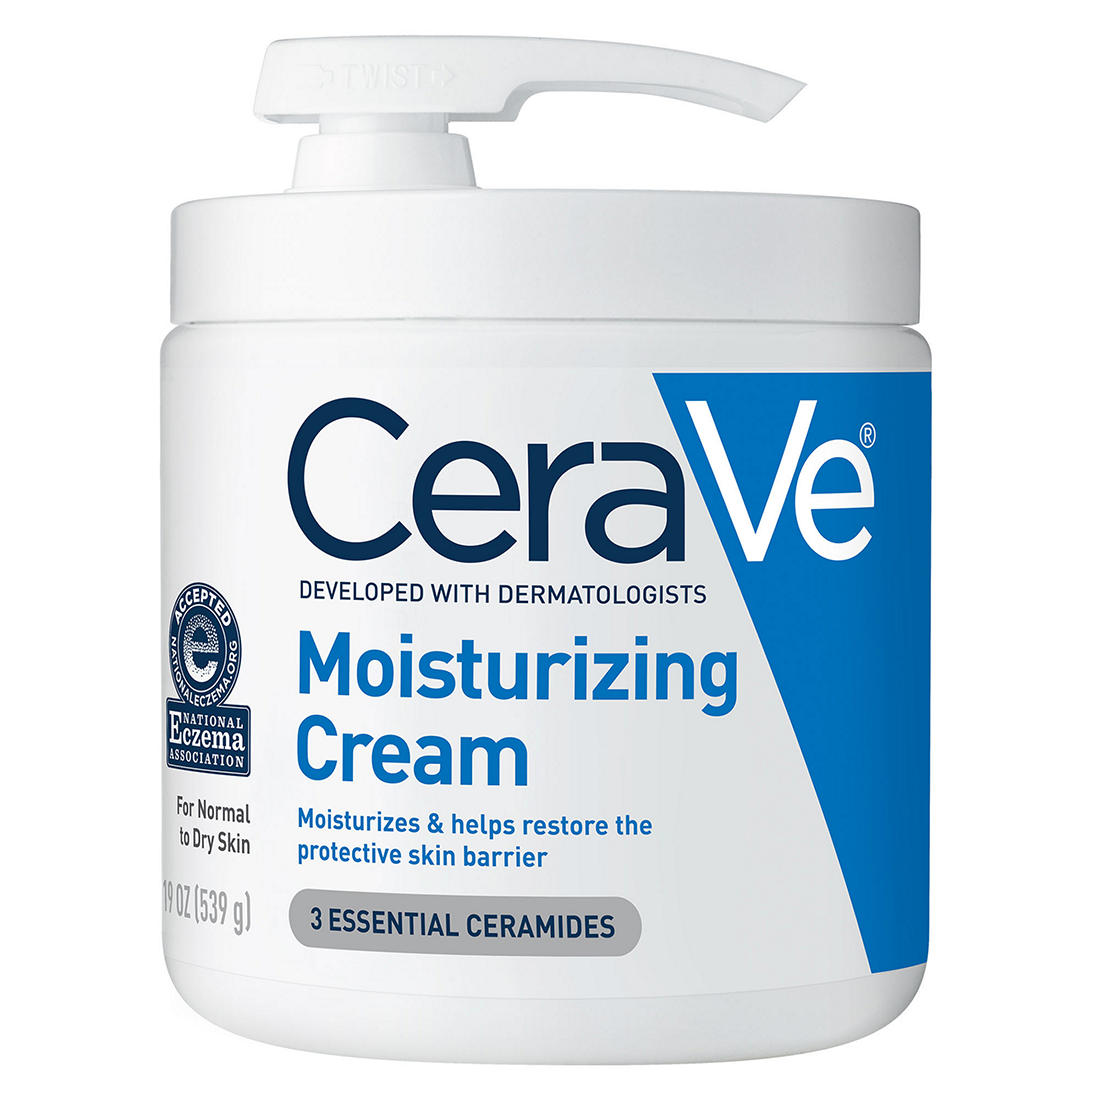 photograph relating to Cerave Printable Coupon known as CeraVe Moisturizing Product, 19 oz.